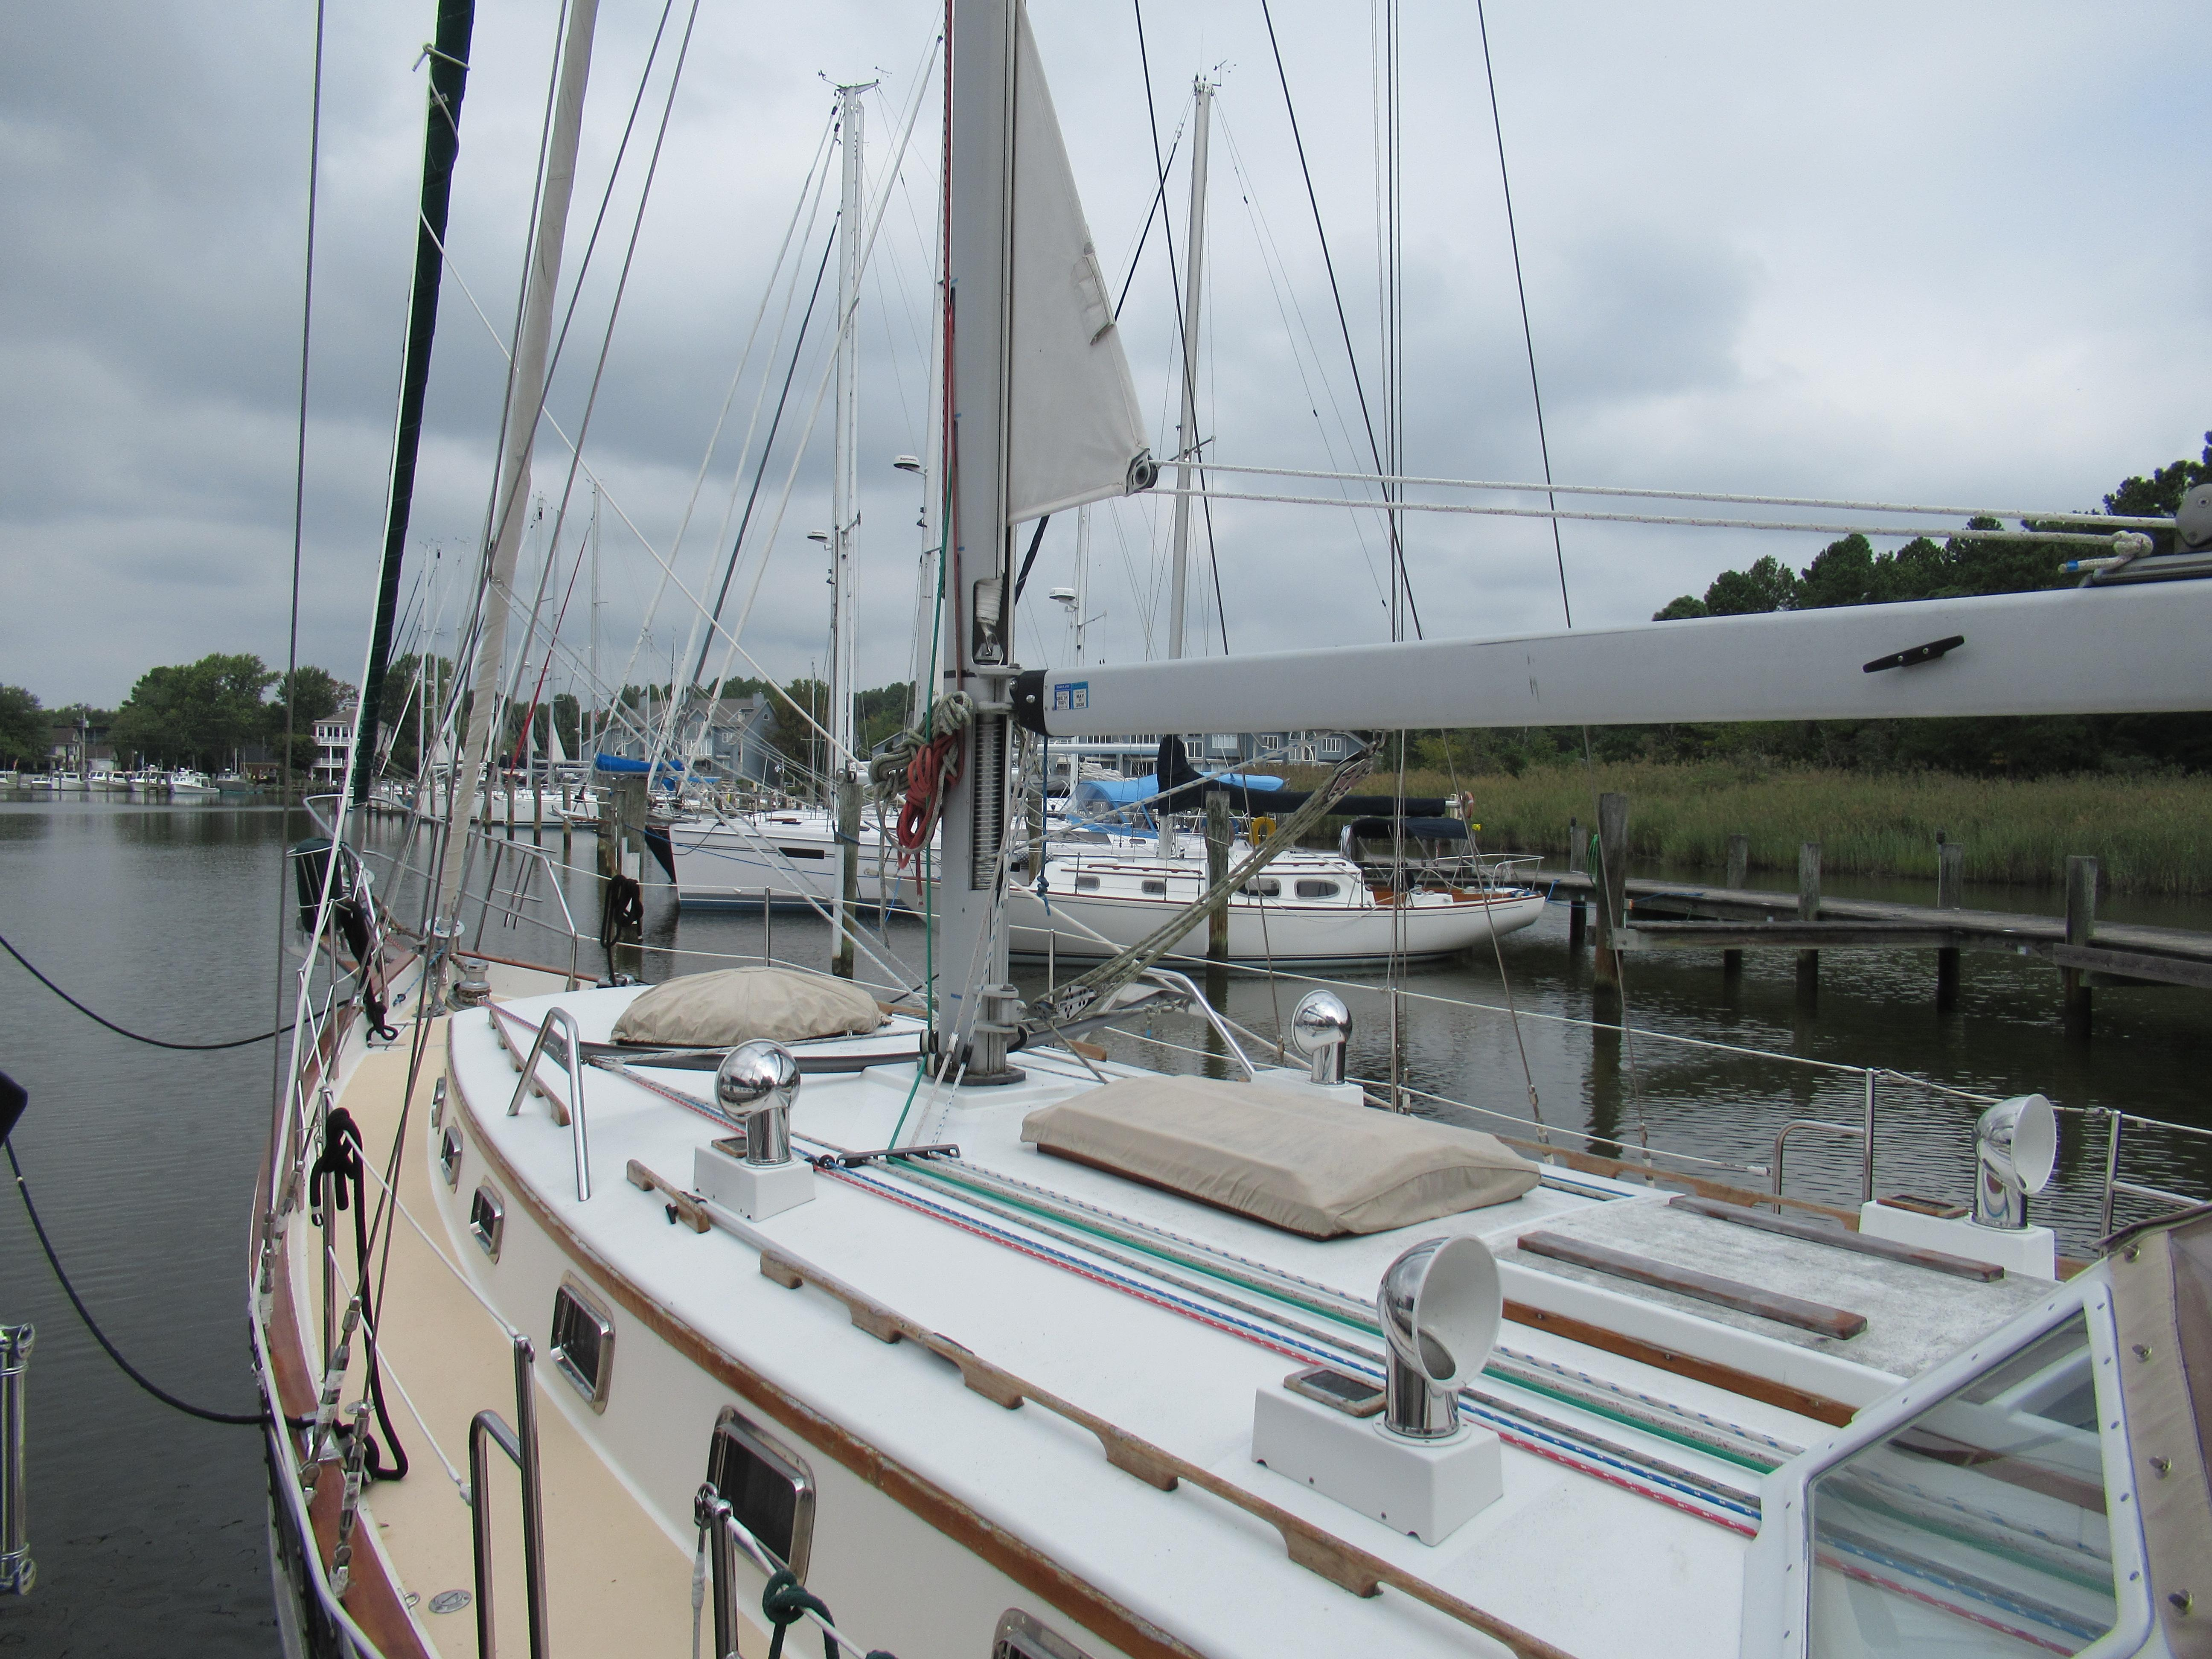 Looking forward to Mast & Bow